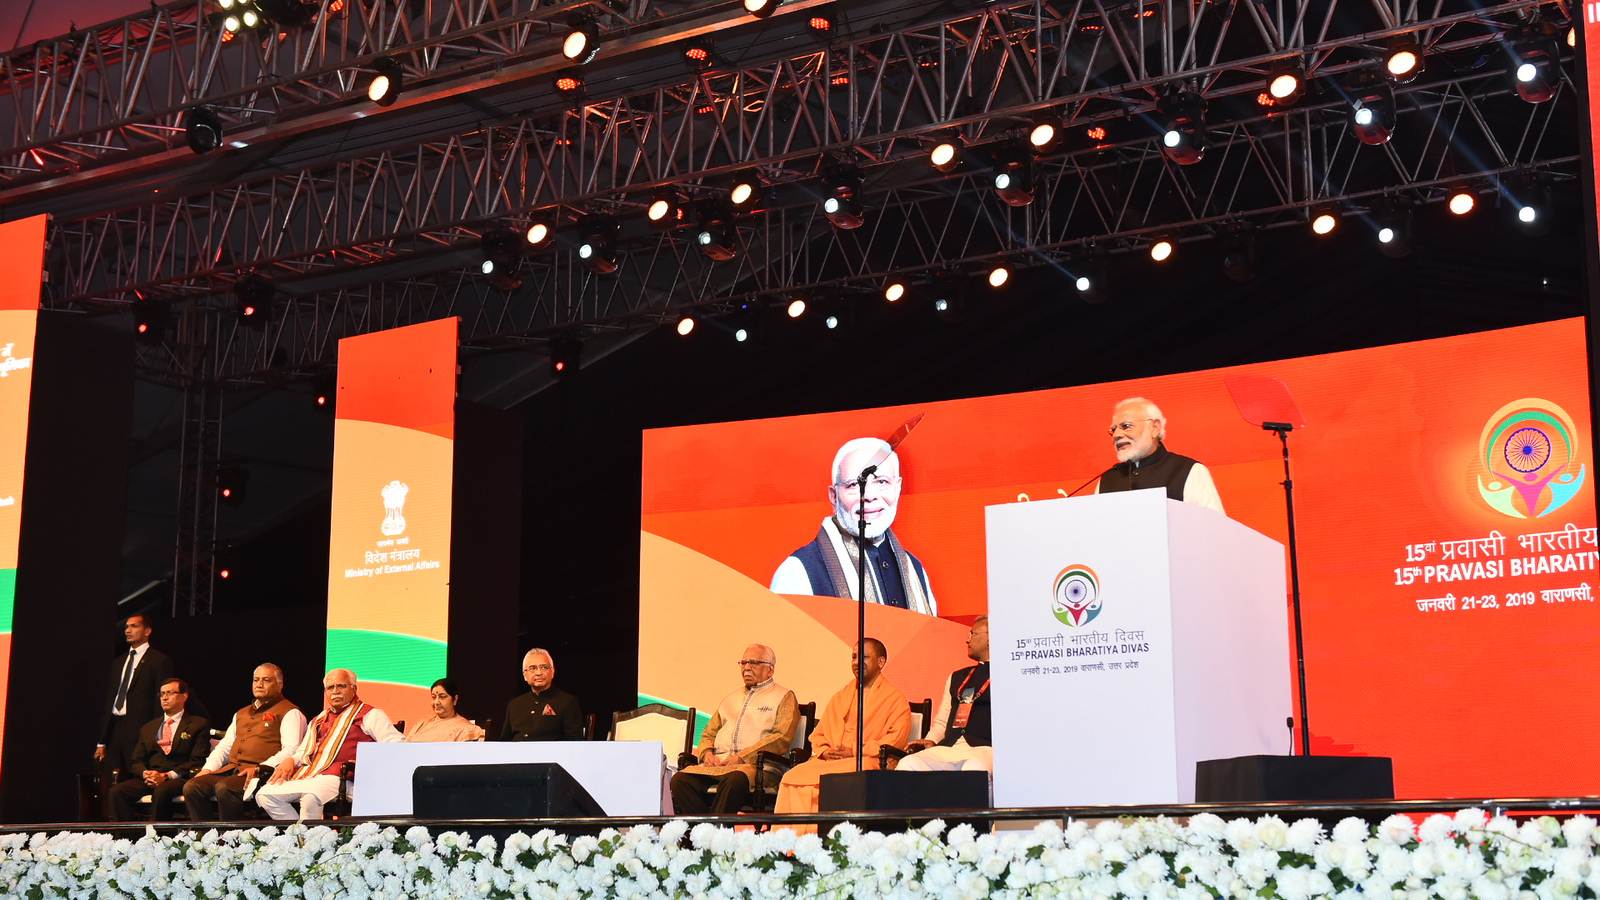 Prime Minister delivers his Address at Inauguration of 15th Pravasi Bhartiya Divas Convention 2019 (January 22, 2019)